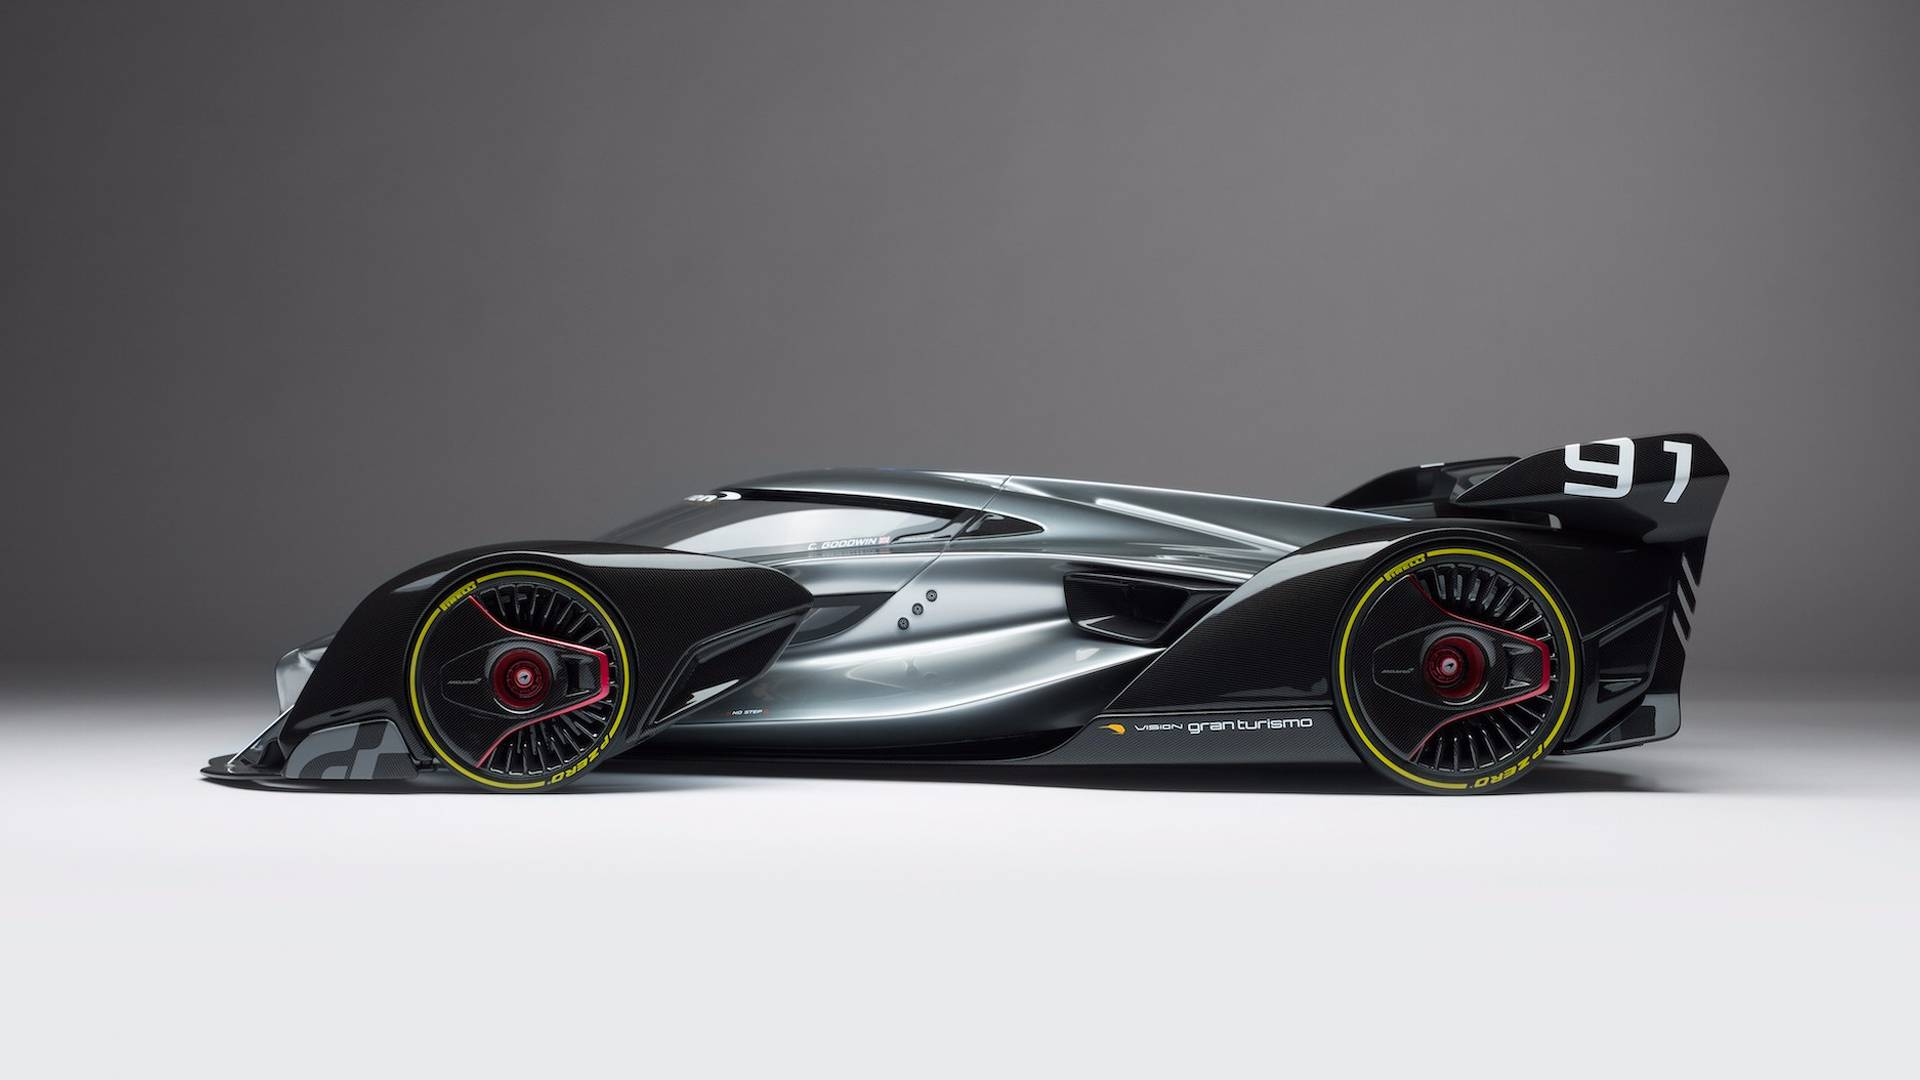 mclaren-ultimate-vision-gt-scale-model (1)